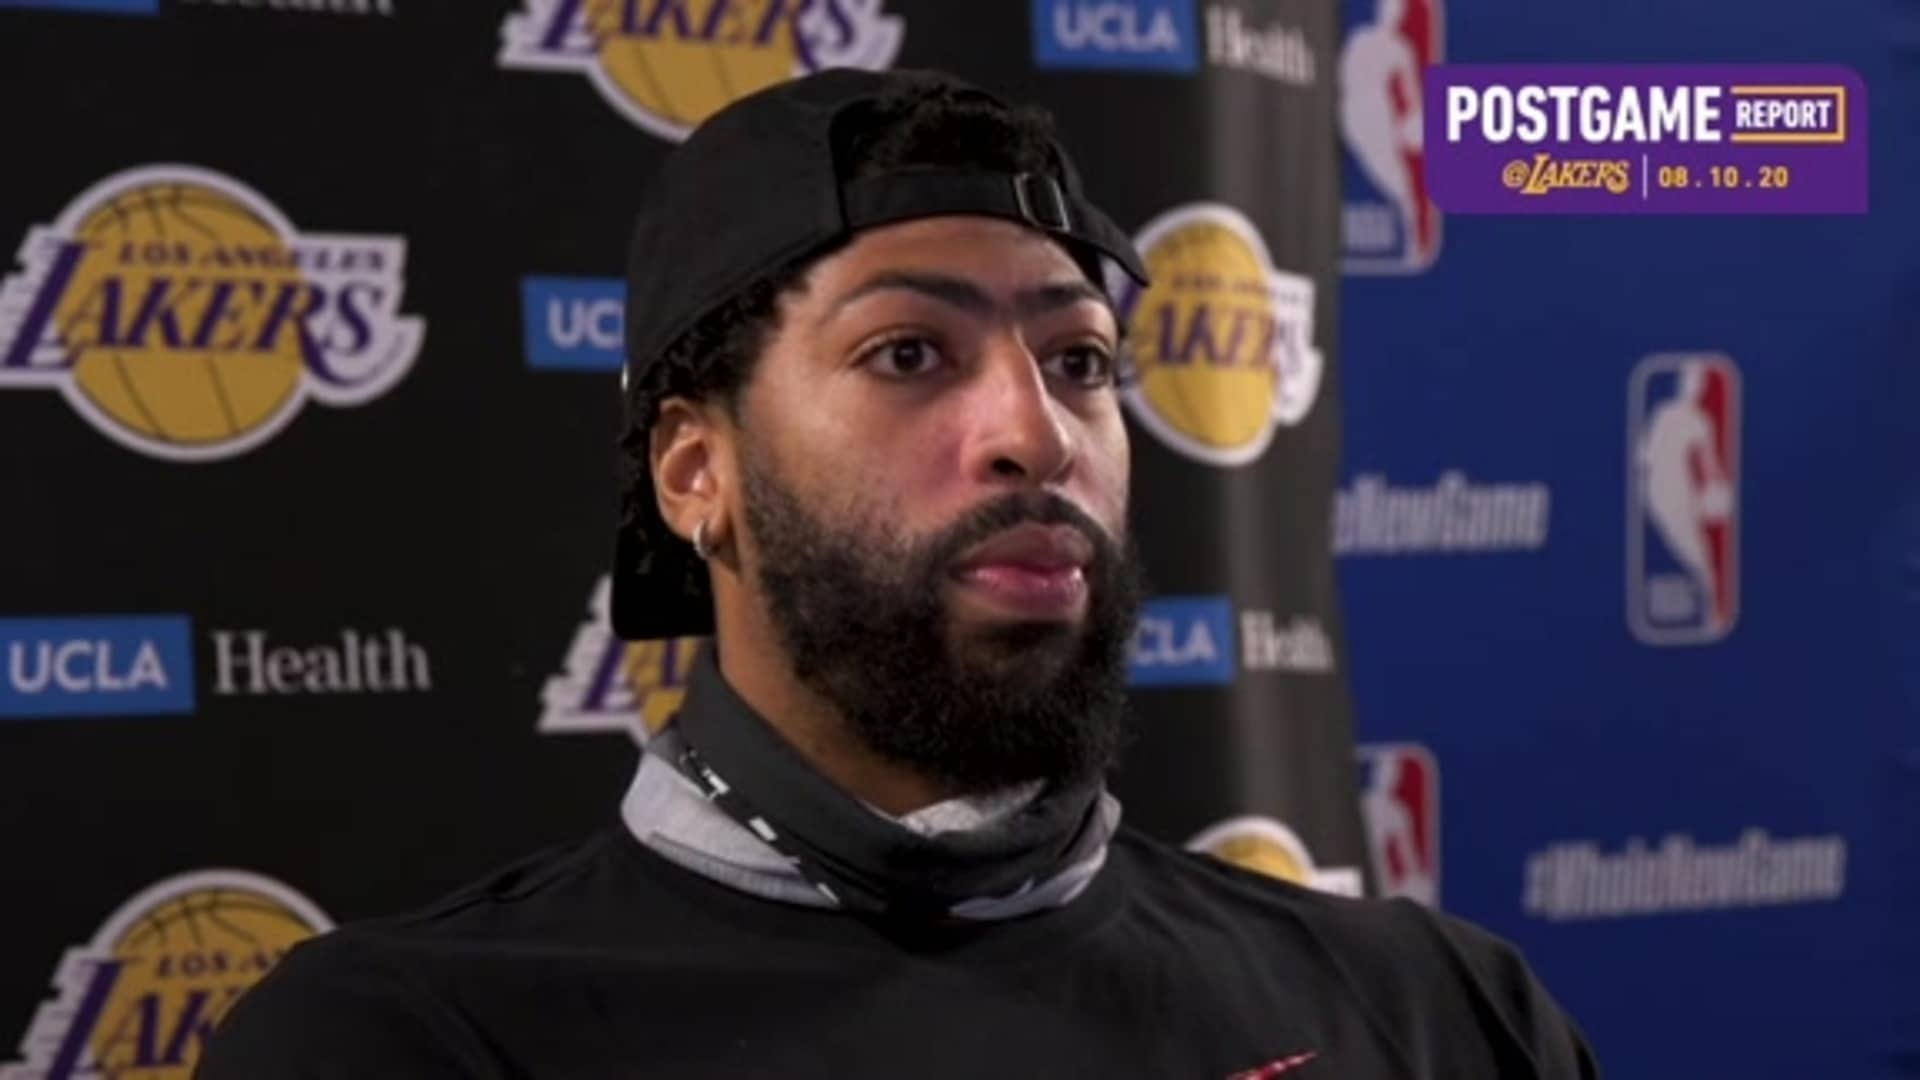 Lakers Postgame: Anthony Davis (8/10/20)